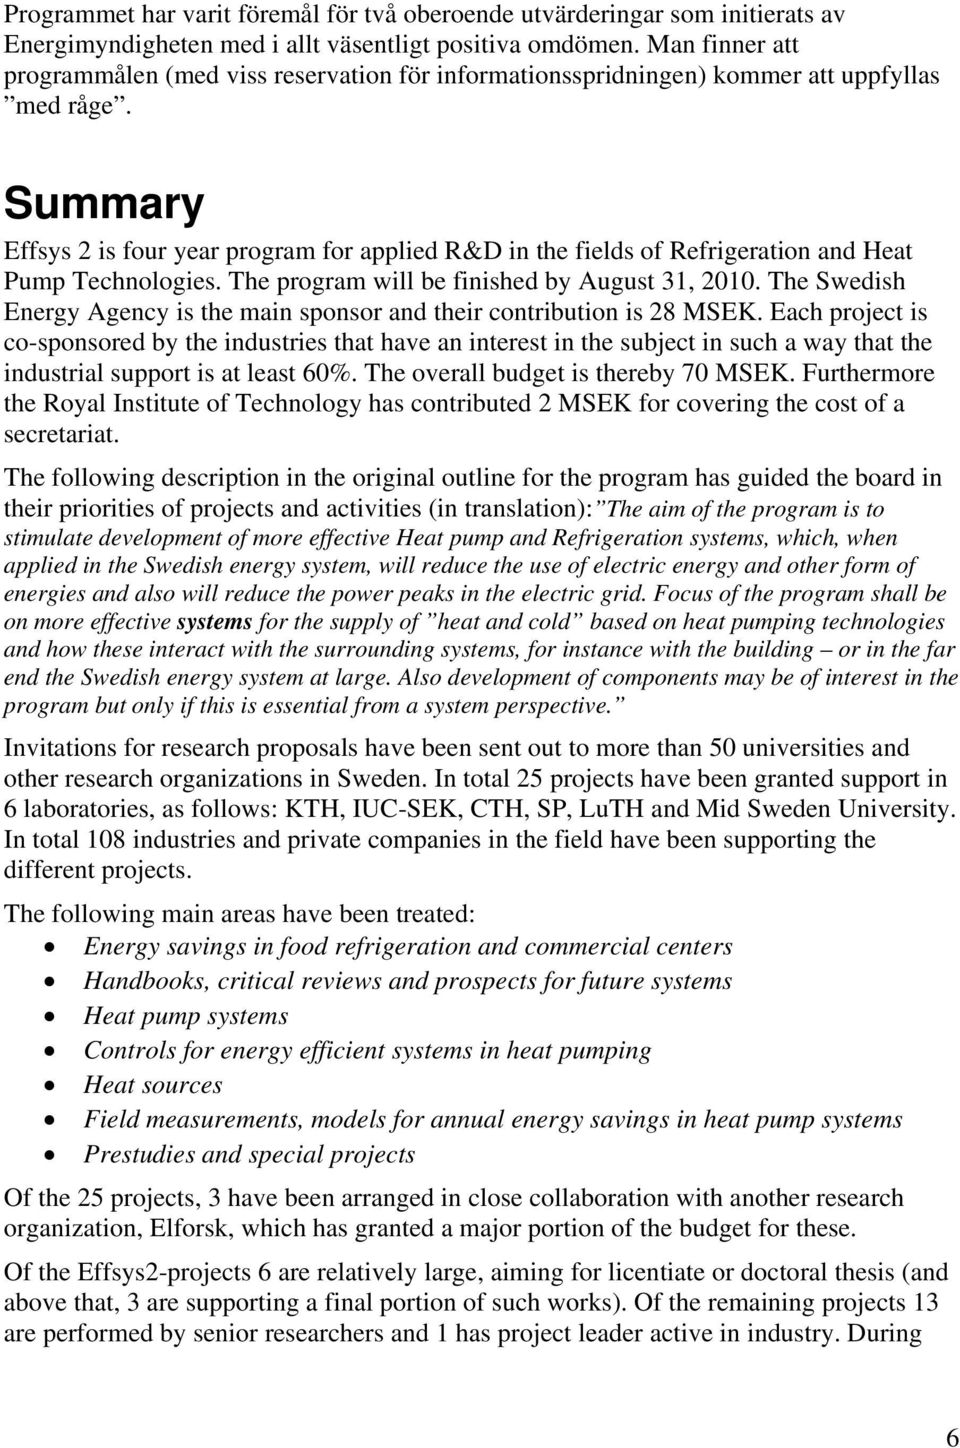 Summary Effsys 2 is four year program for applied R&D in the fields of Refrigeration and Heat Pump Technologies. The program will be finished by August 31, 2010.